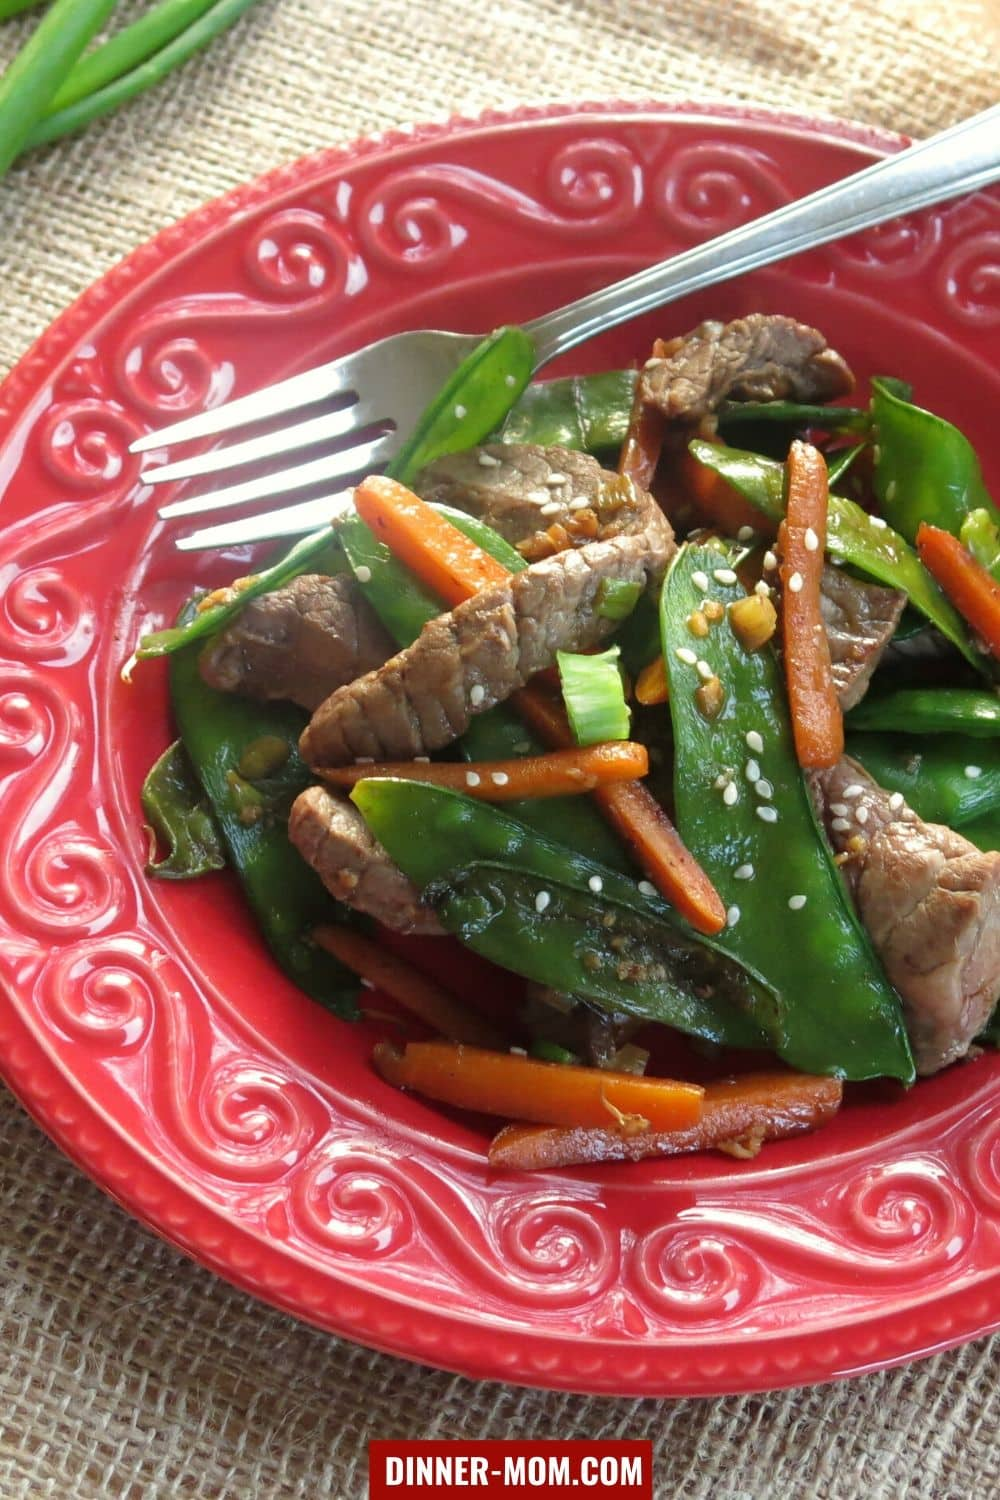 Sesame beef, snow peas and carrots on plate with fork